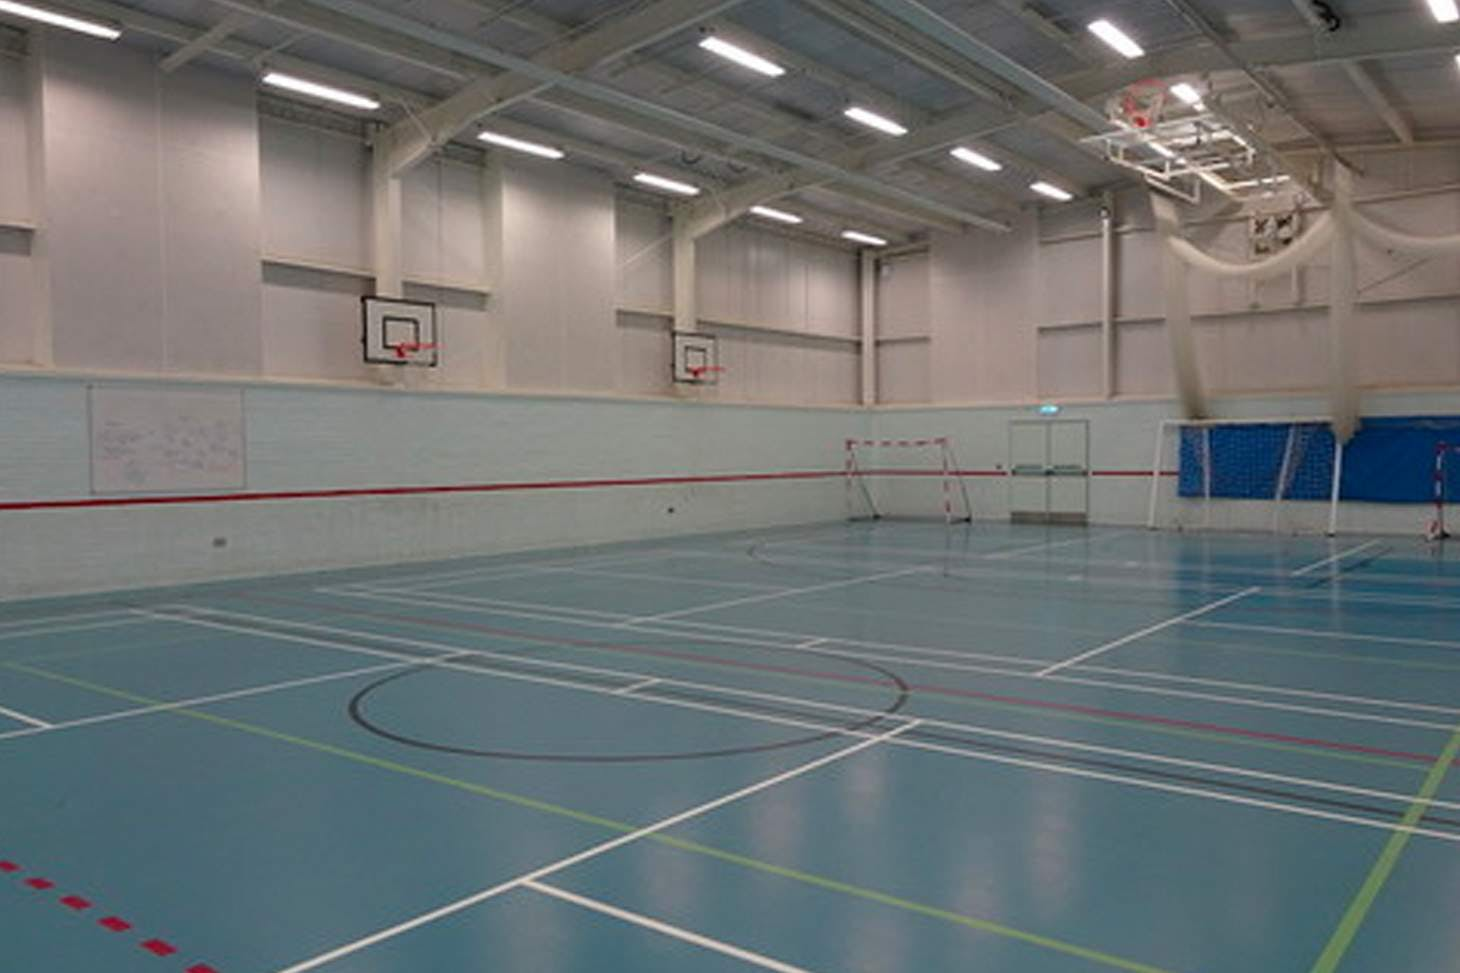 Wilmington Grammar School for Boys Court | Sports hall basketball court